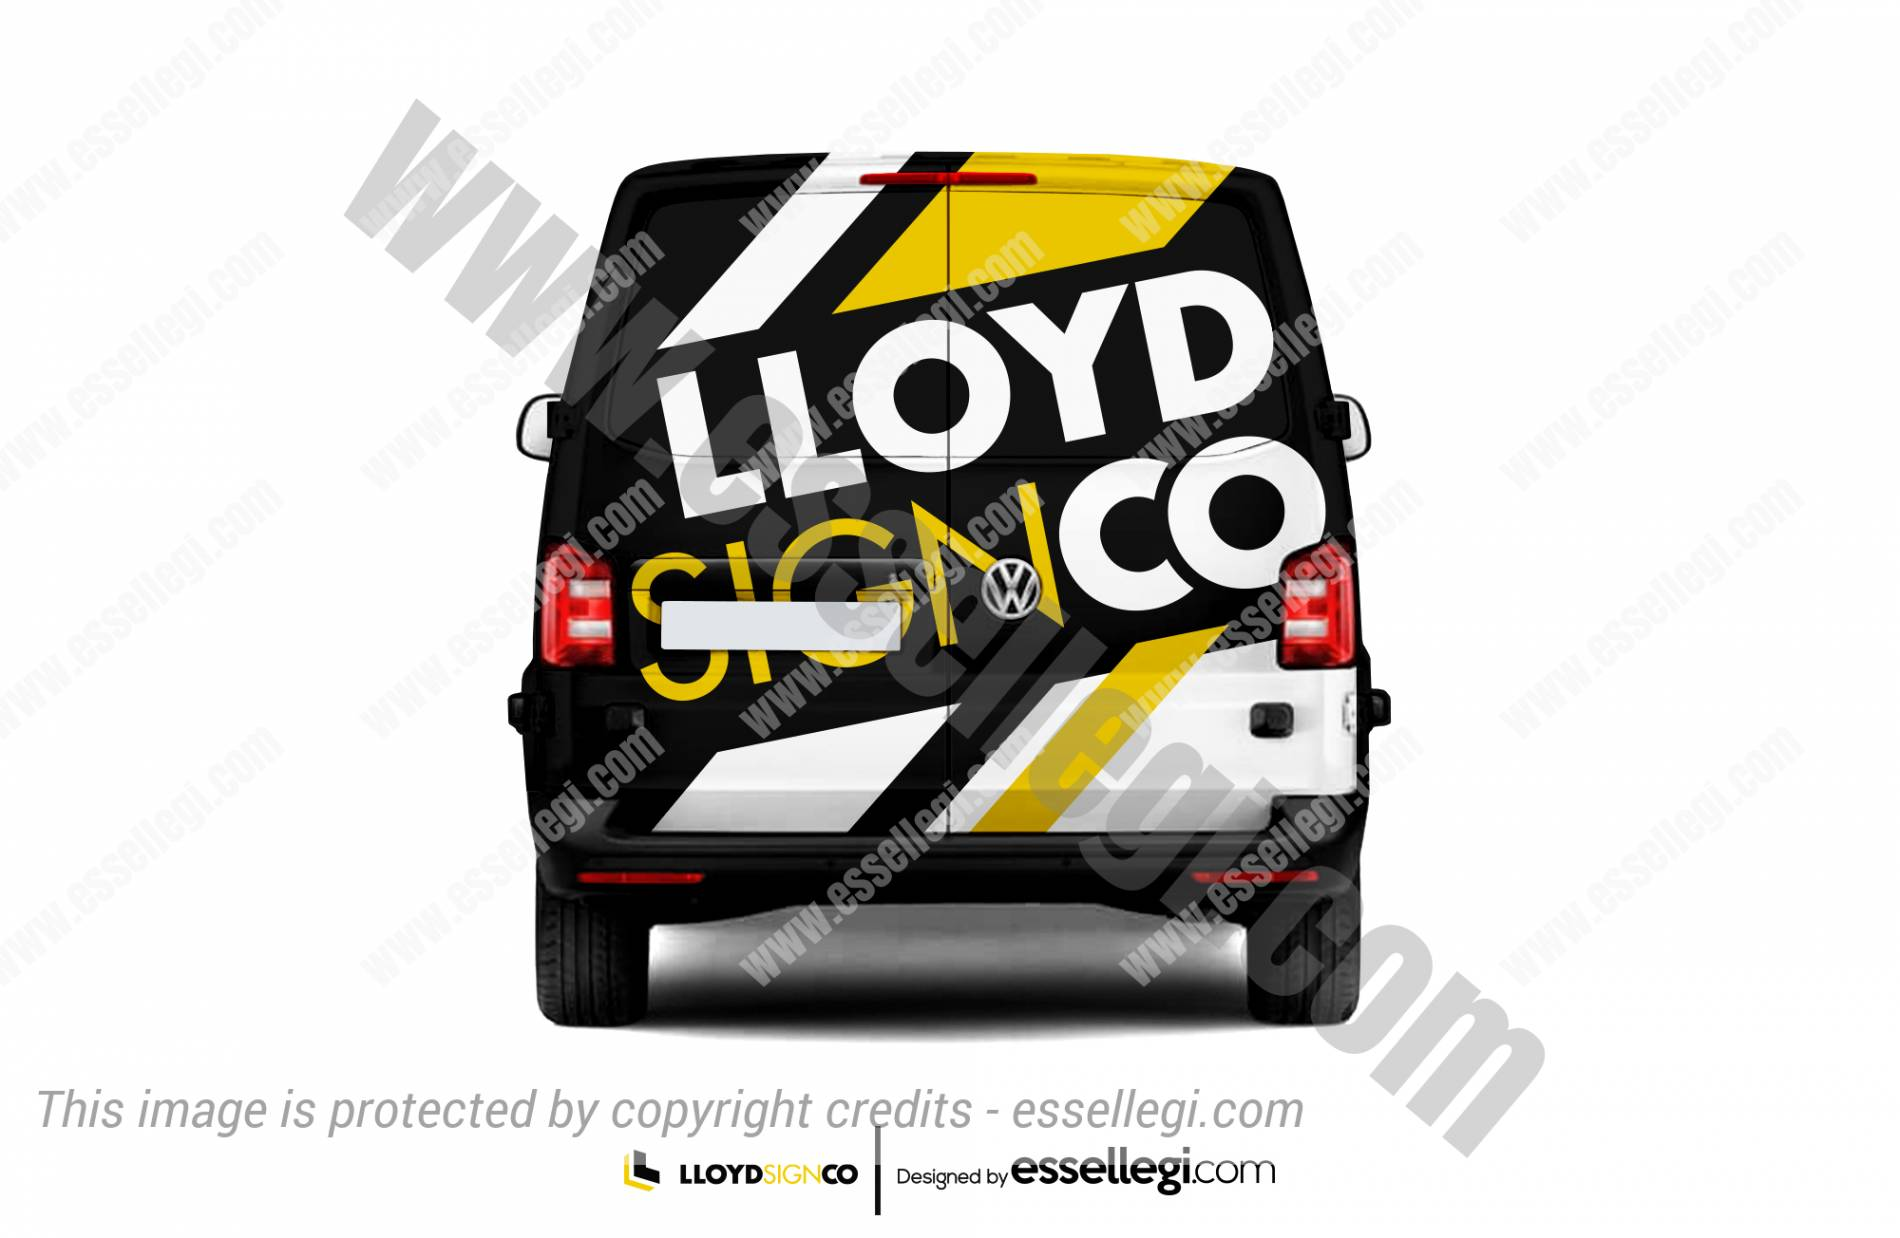 VW Transporter Wrap Design. VW Transporter | Van Wrap Design by Essellegi. Van Signs, Van Signage, Van Wrapping, Van Signwriting, Van Wrap Designer, Signs for Van, Van Logo, Van Graphic by Essellegi.